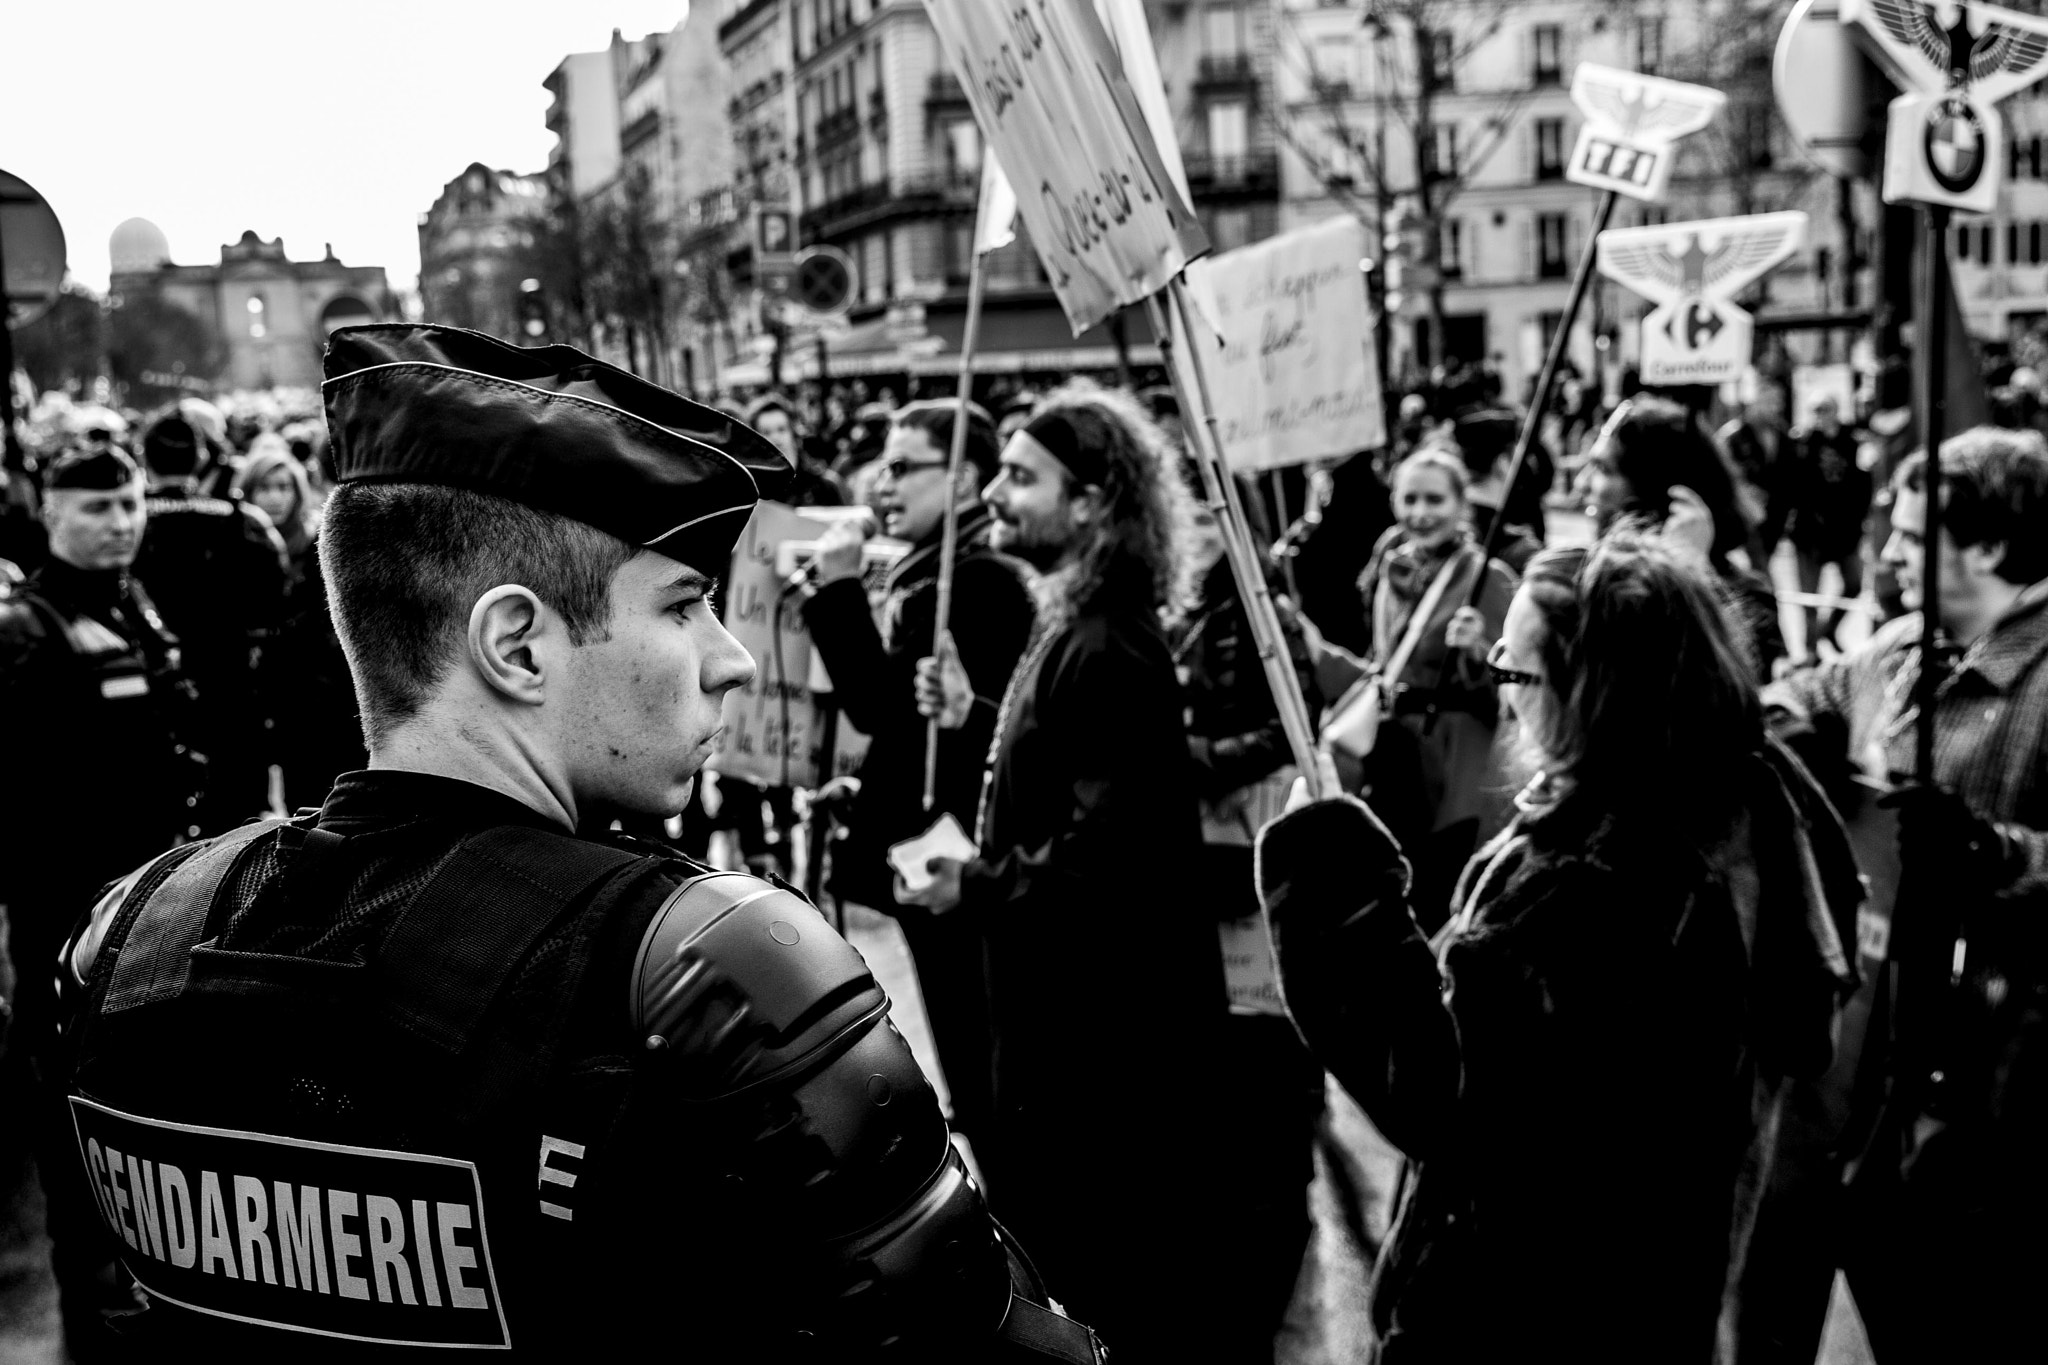 Photograph Gendarmerie = Security. by Sacha Morem on 500px